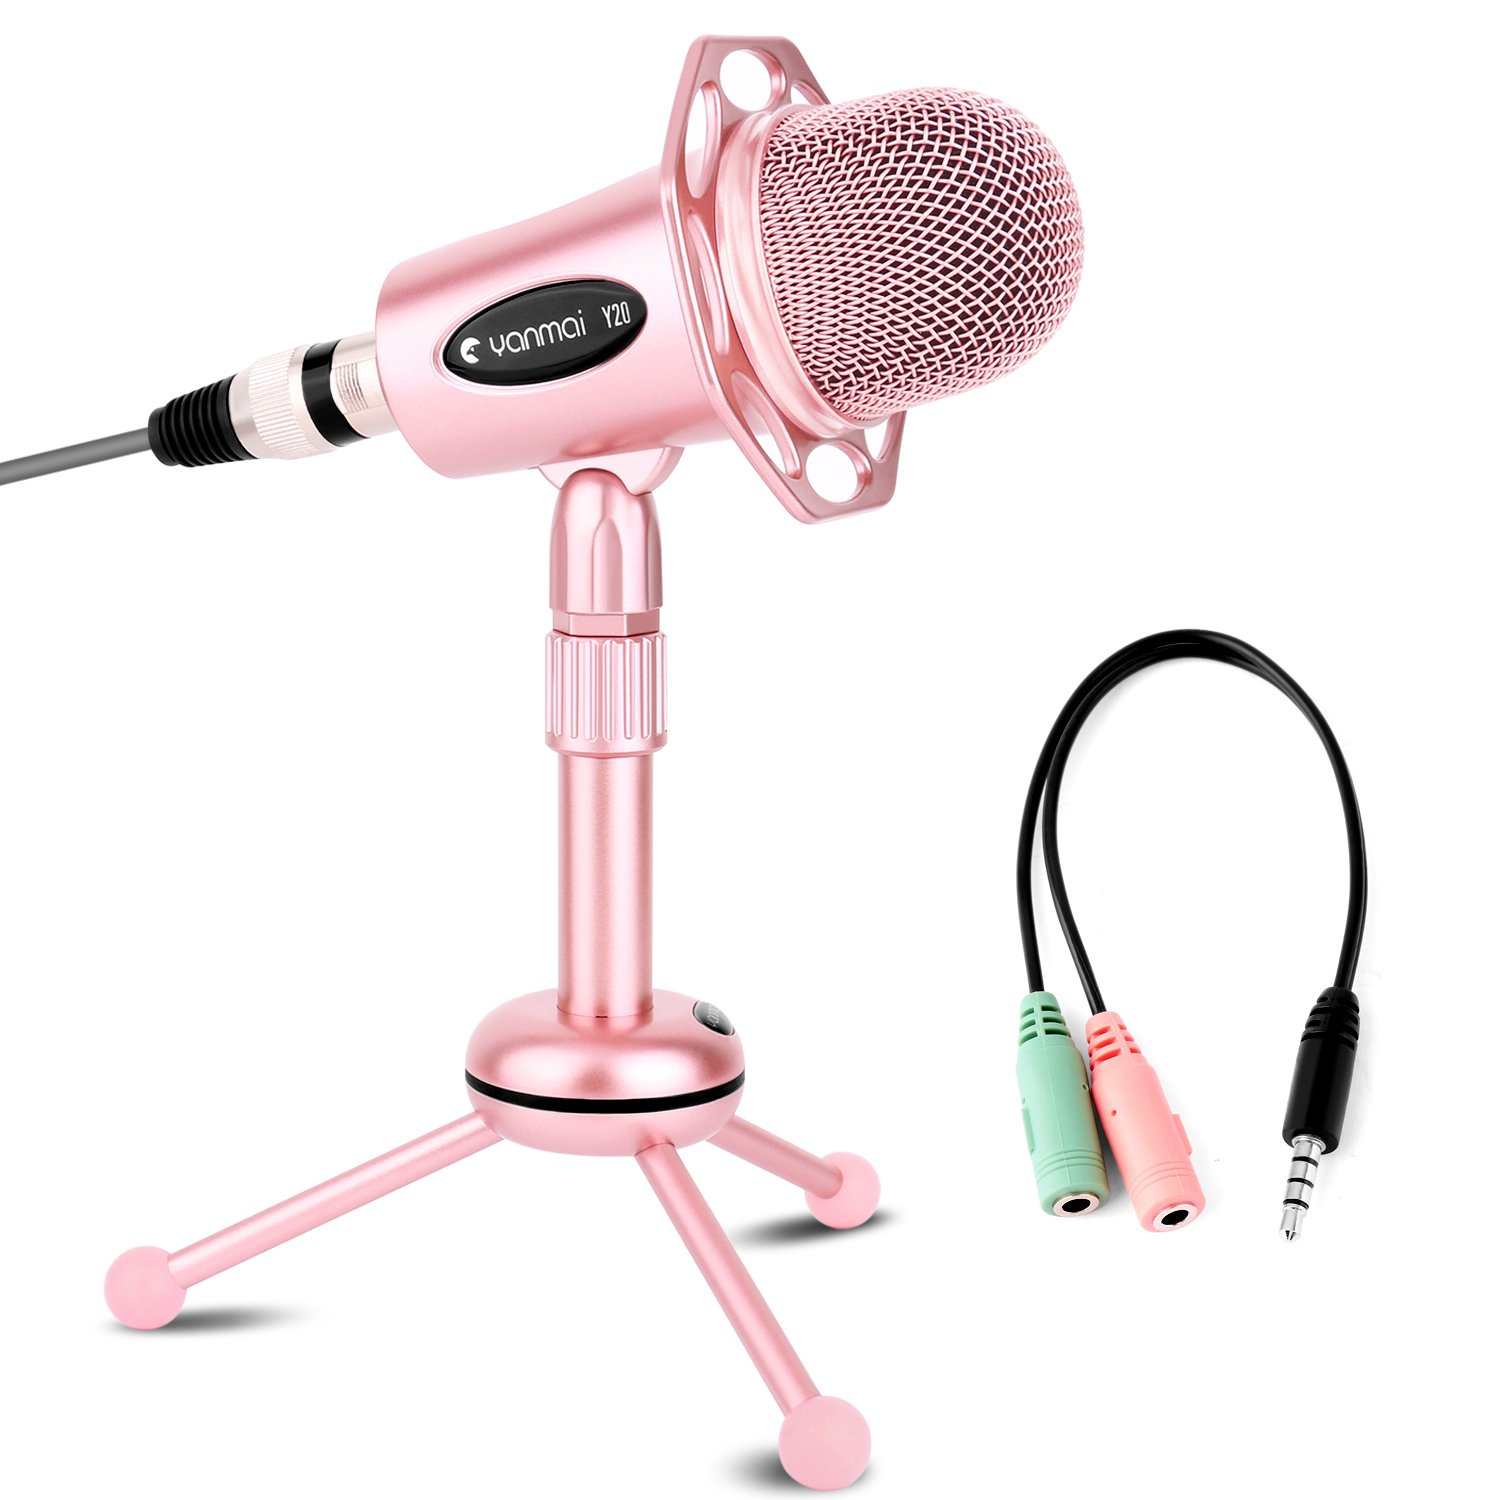 USHAWN Recording Microphone with Tripod Stand for Broadcasting, Chatting, Interview, Video Conference, Gaming, Perfect Fit Your PC, Laptop and Phones(Rose Gold) by USHAWN